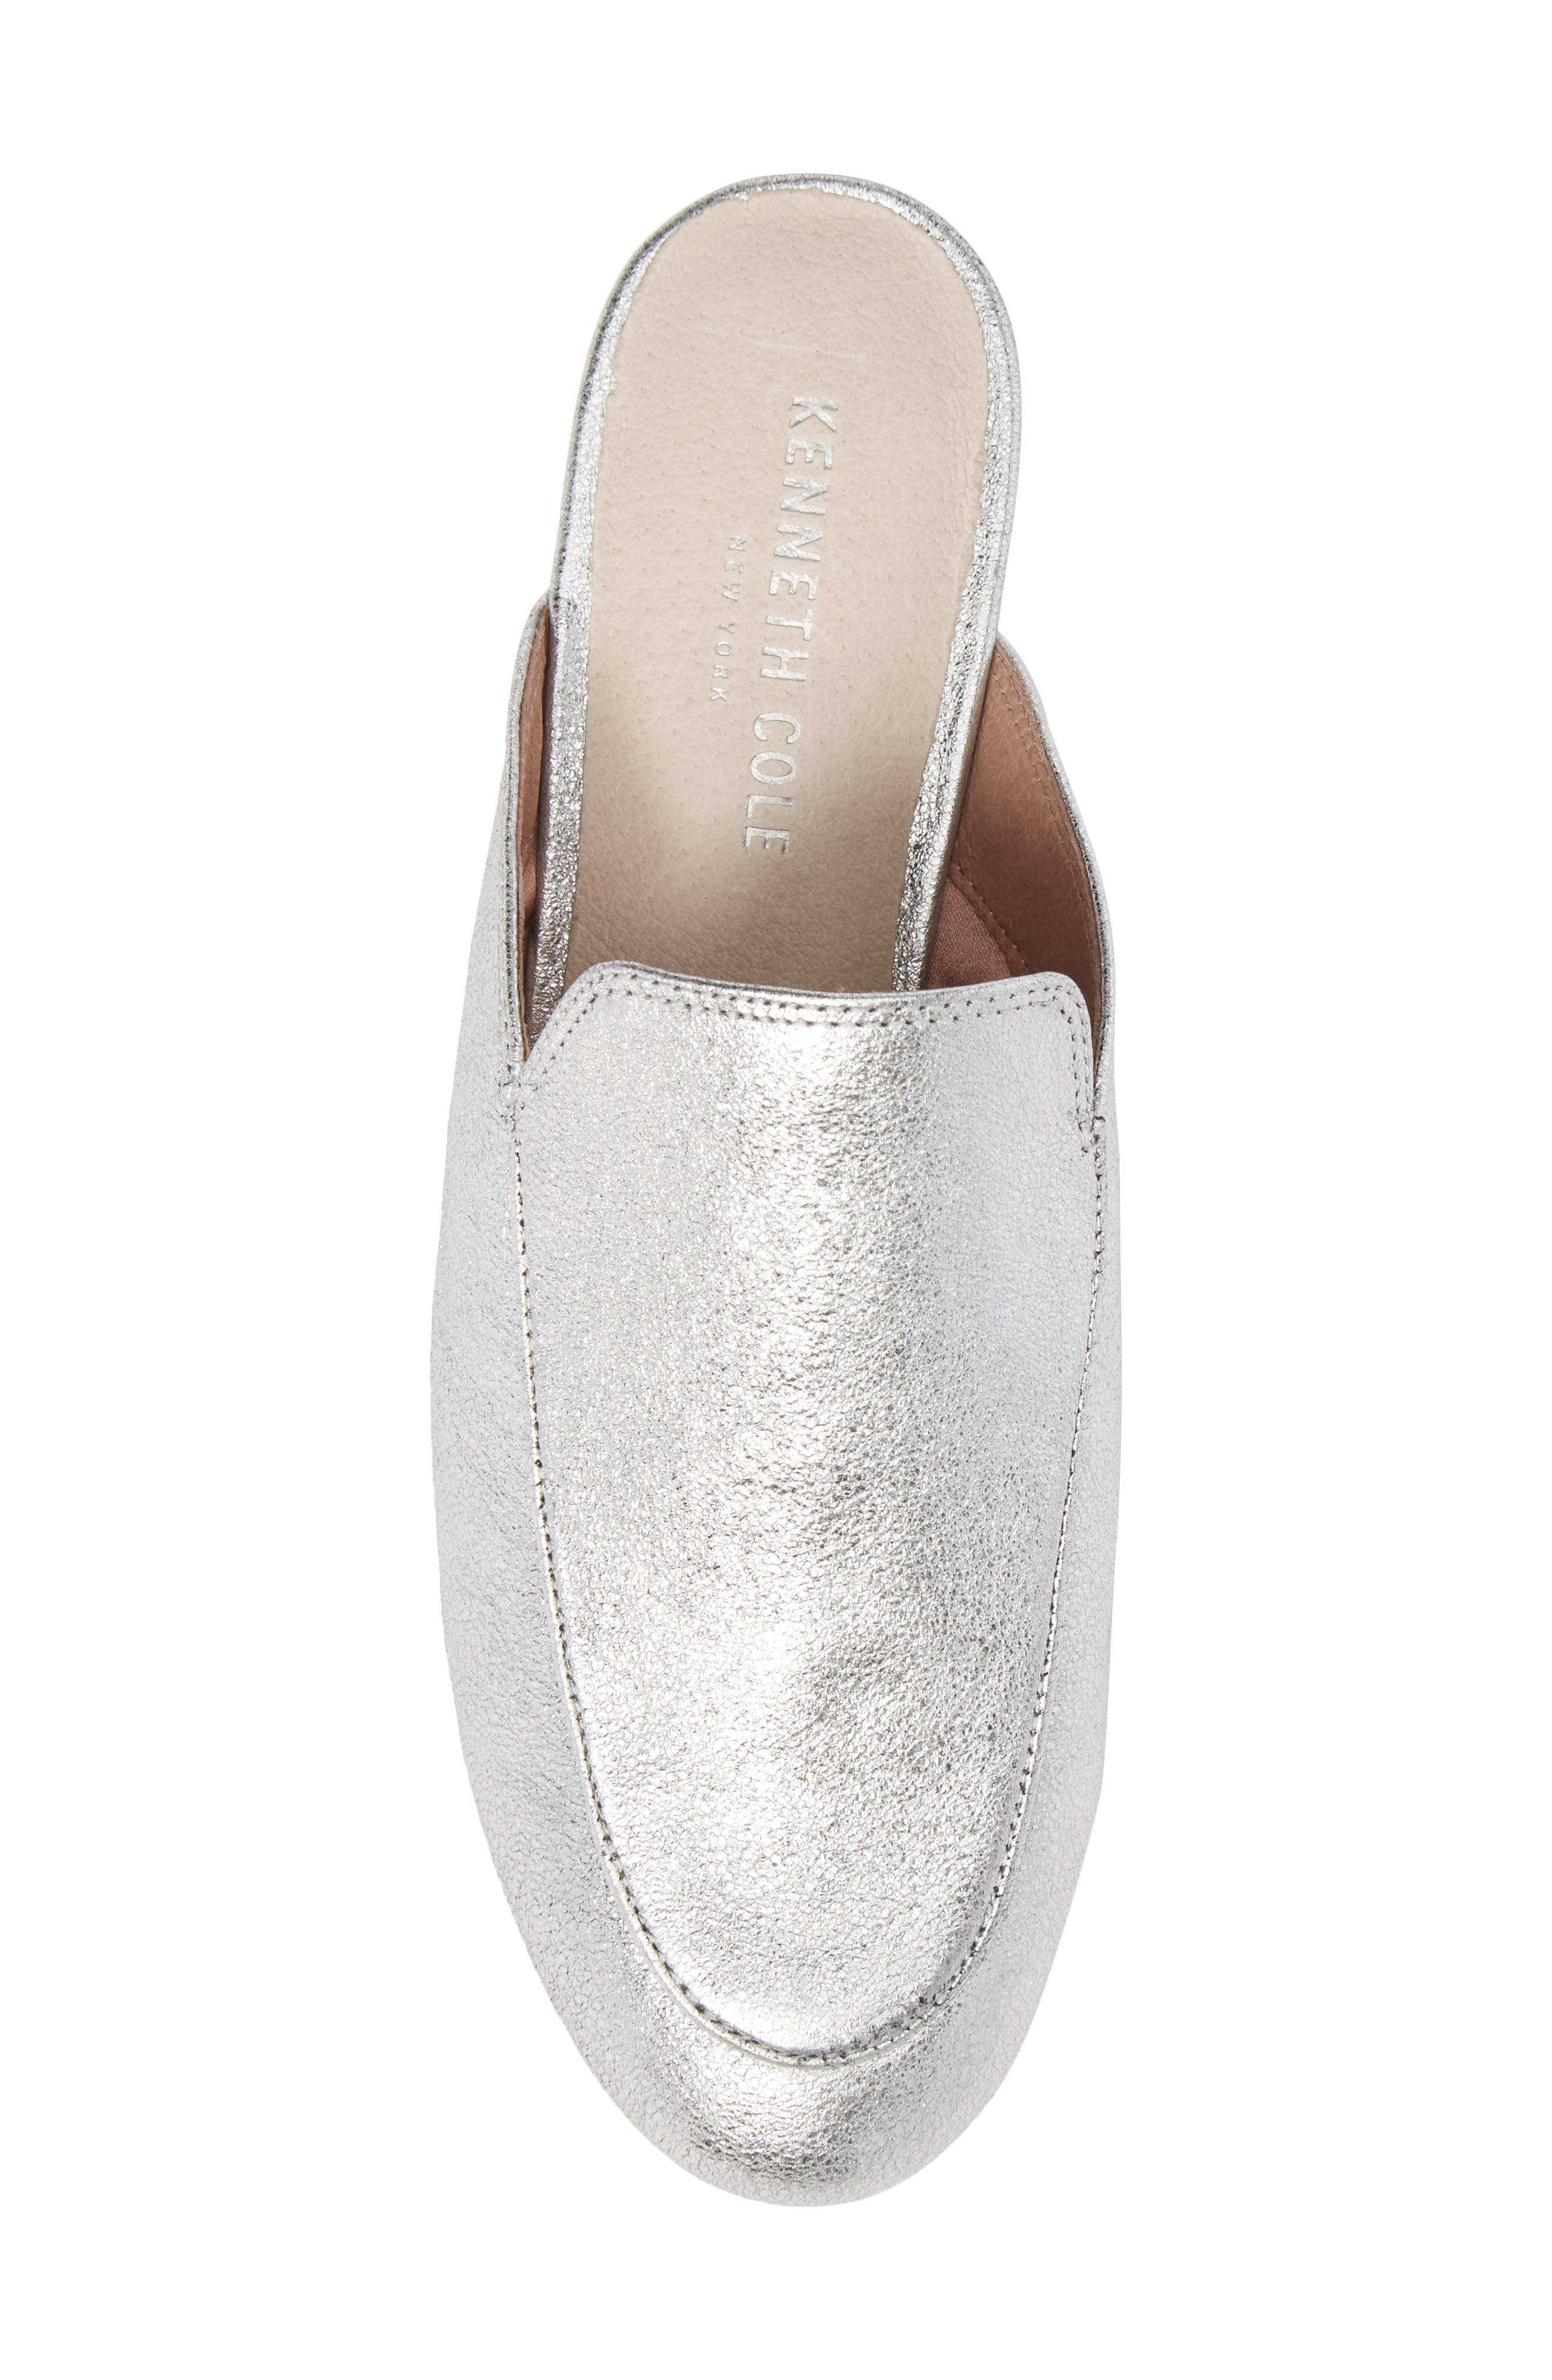 KENNETH COLE NEW YORK,                             Wallice Appliqué Mule,                             Alternate thumbnail 5, color,                             040